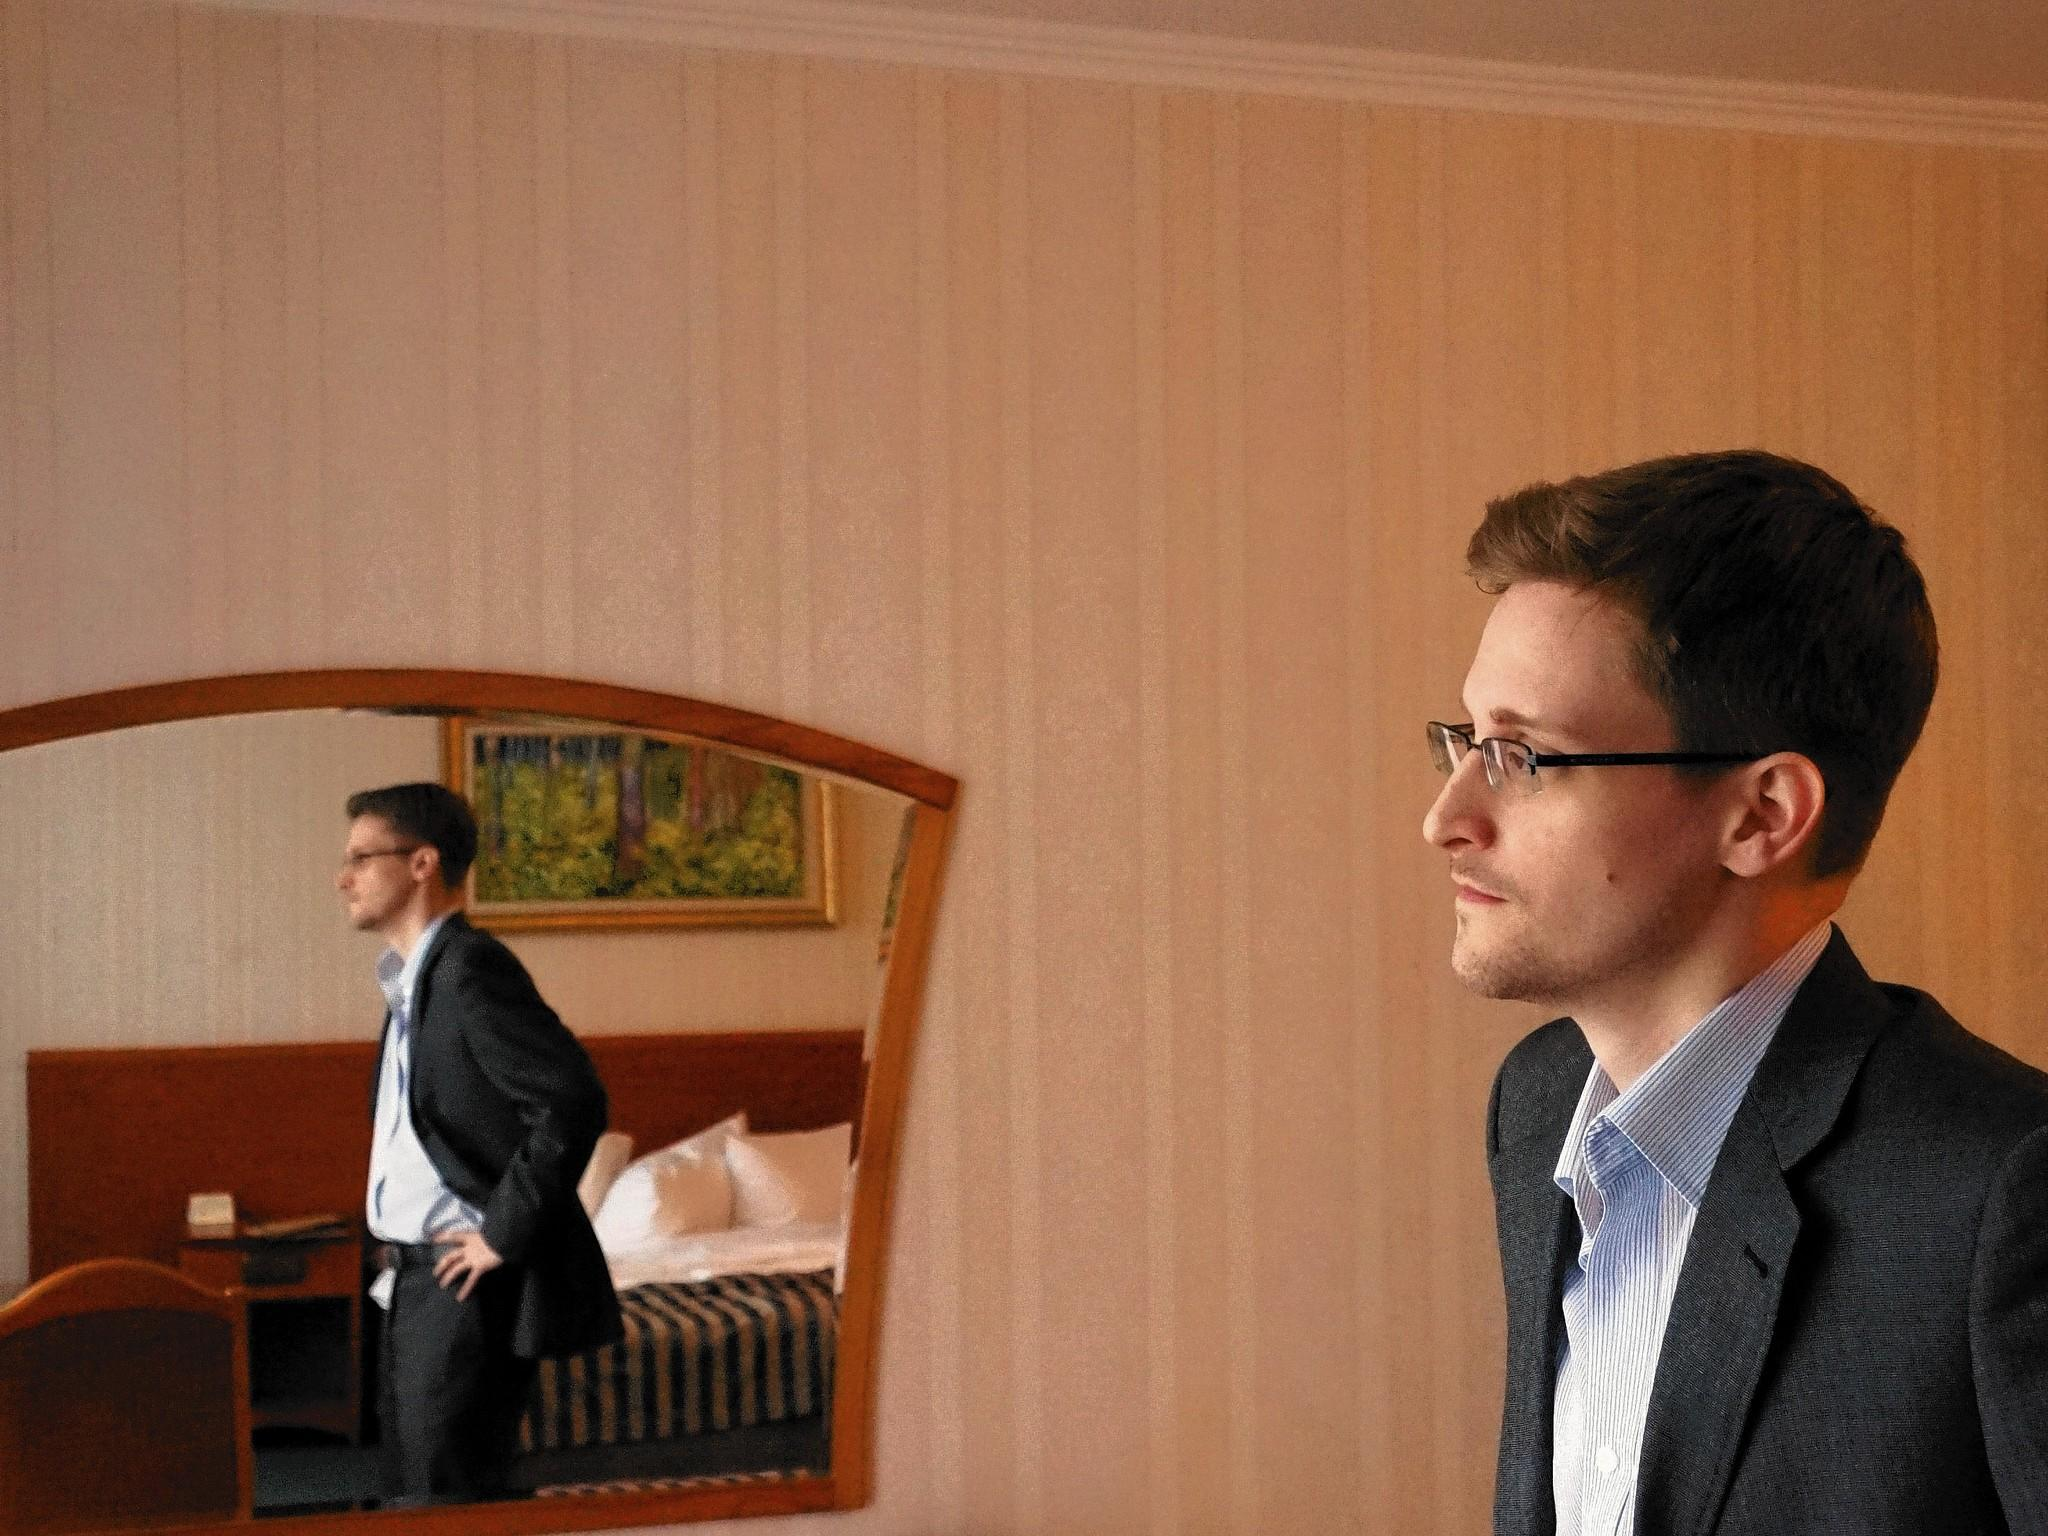 Edward Snowden, the former National Security Agency contractor who revealed information about NSA surveillance programs, is seen in a Moscow hotel room last month.